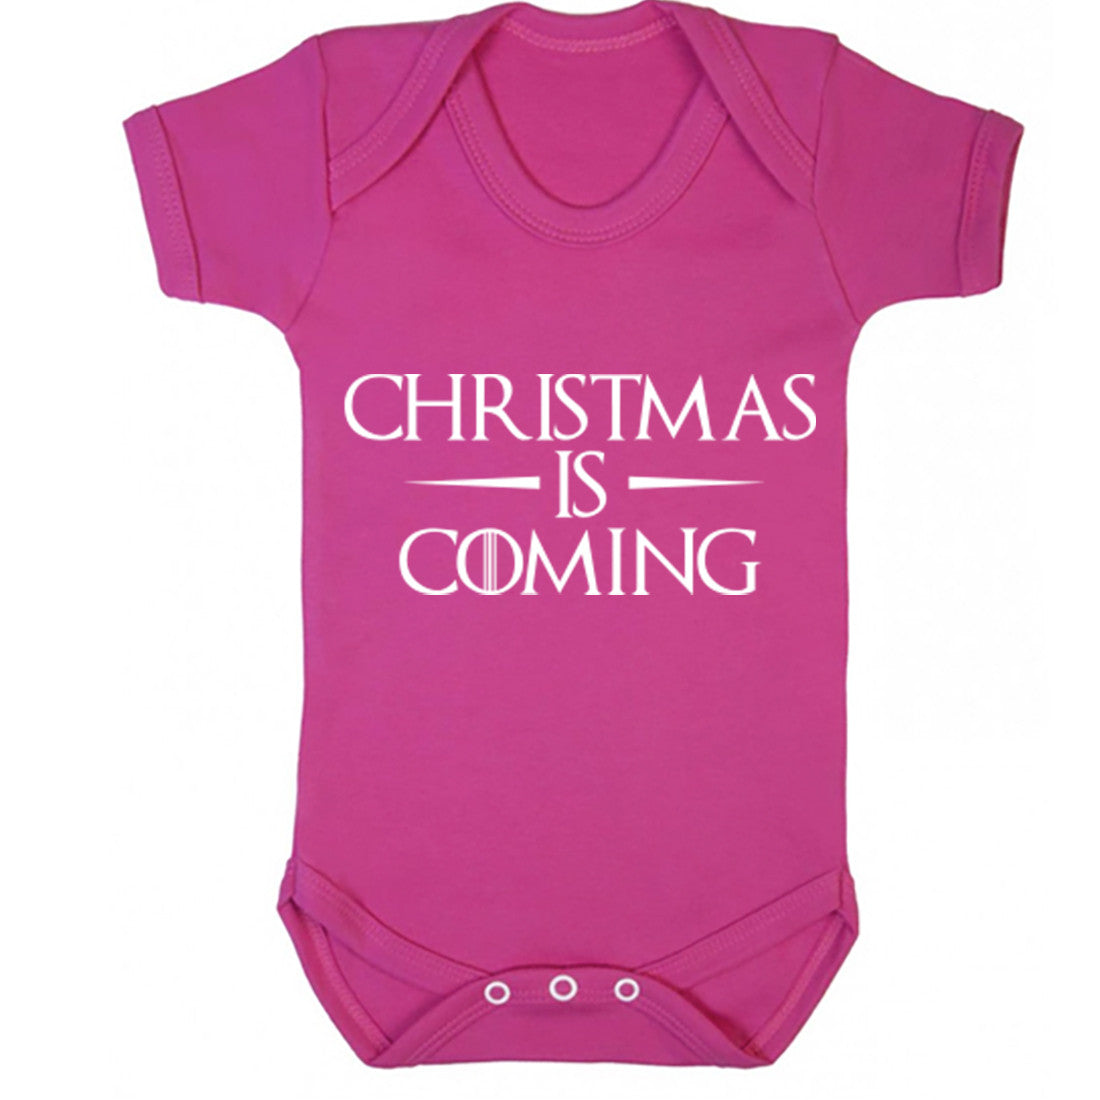 Christmas Is Coming Baby Vest K1362 - Illustrated Identity Ltd.